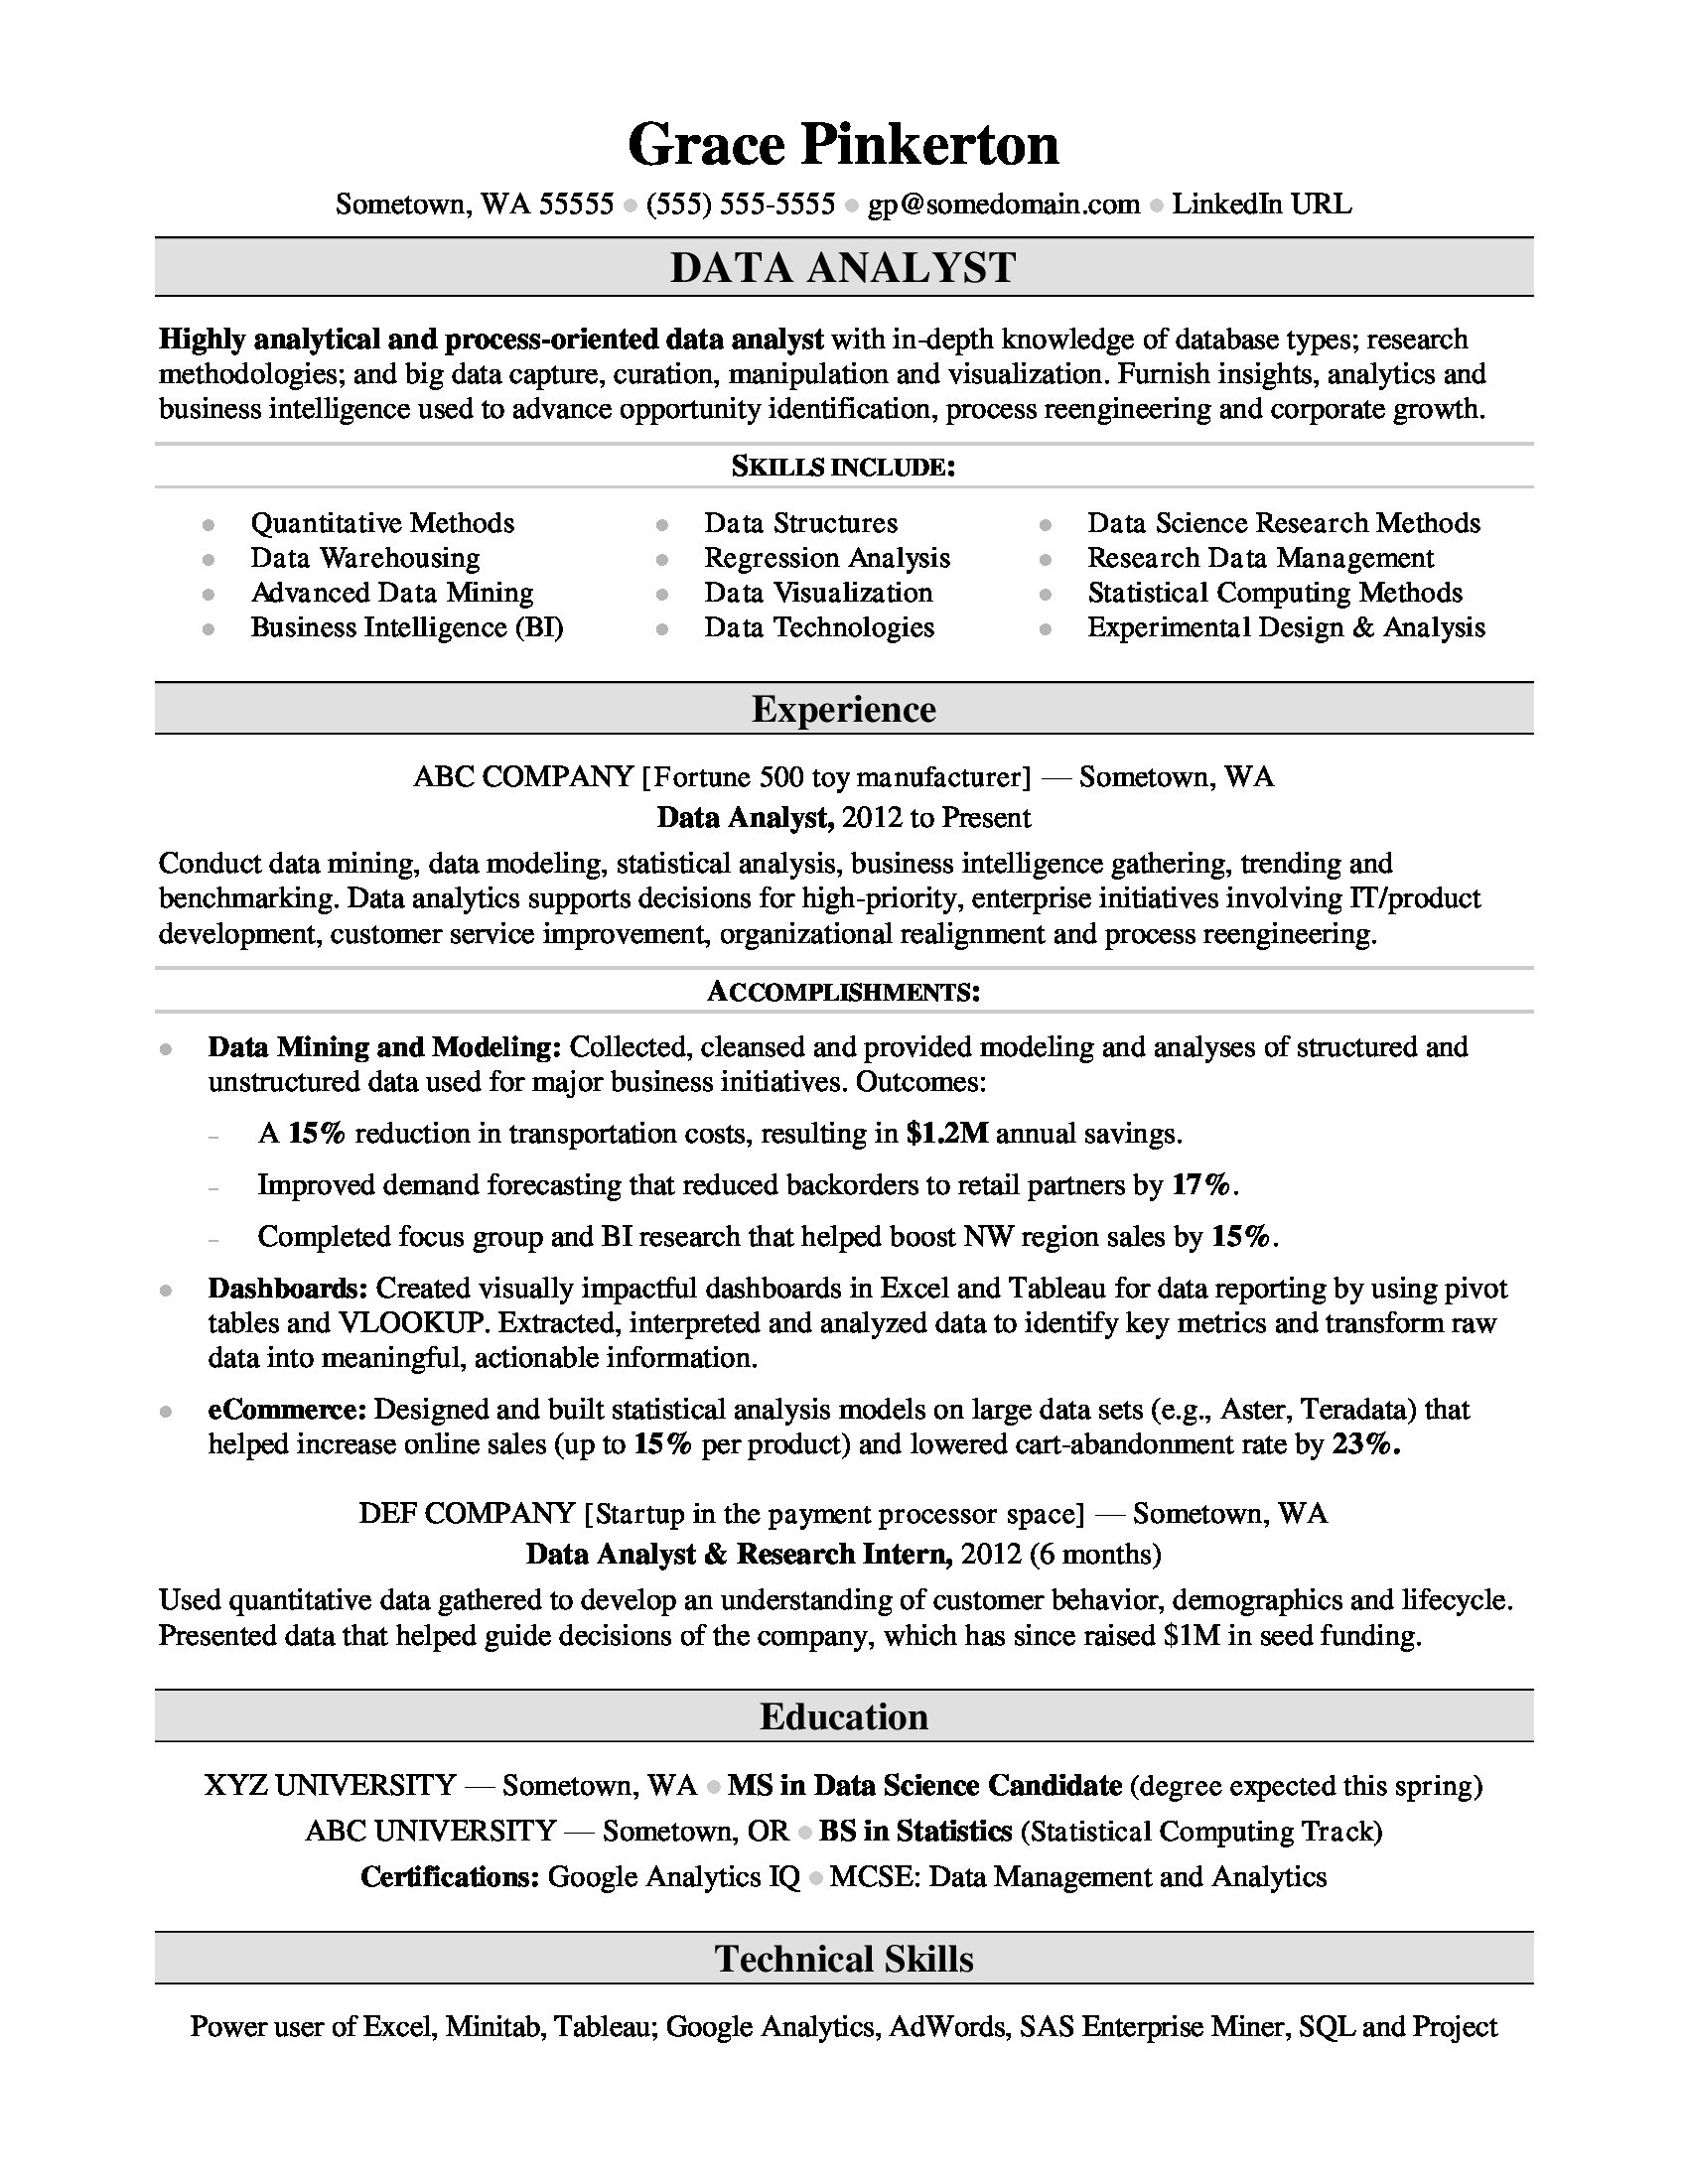 Data analyst resume sample monster data analyst resume sample altavistaventures Choice Image